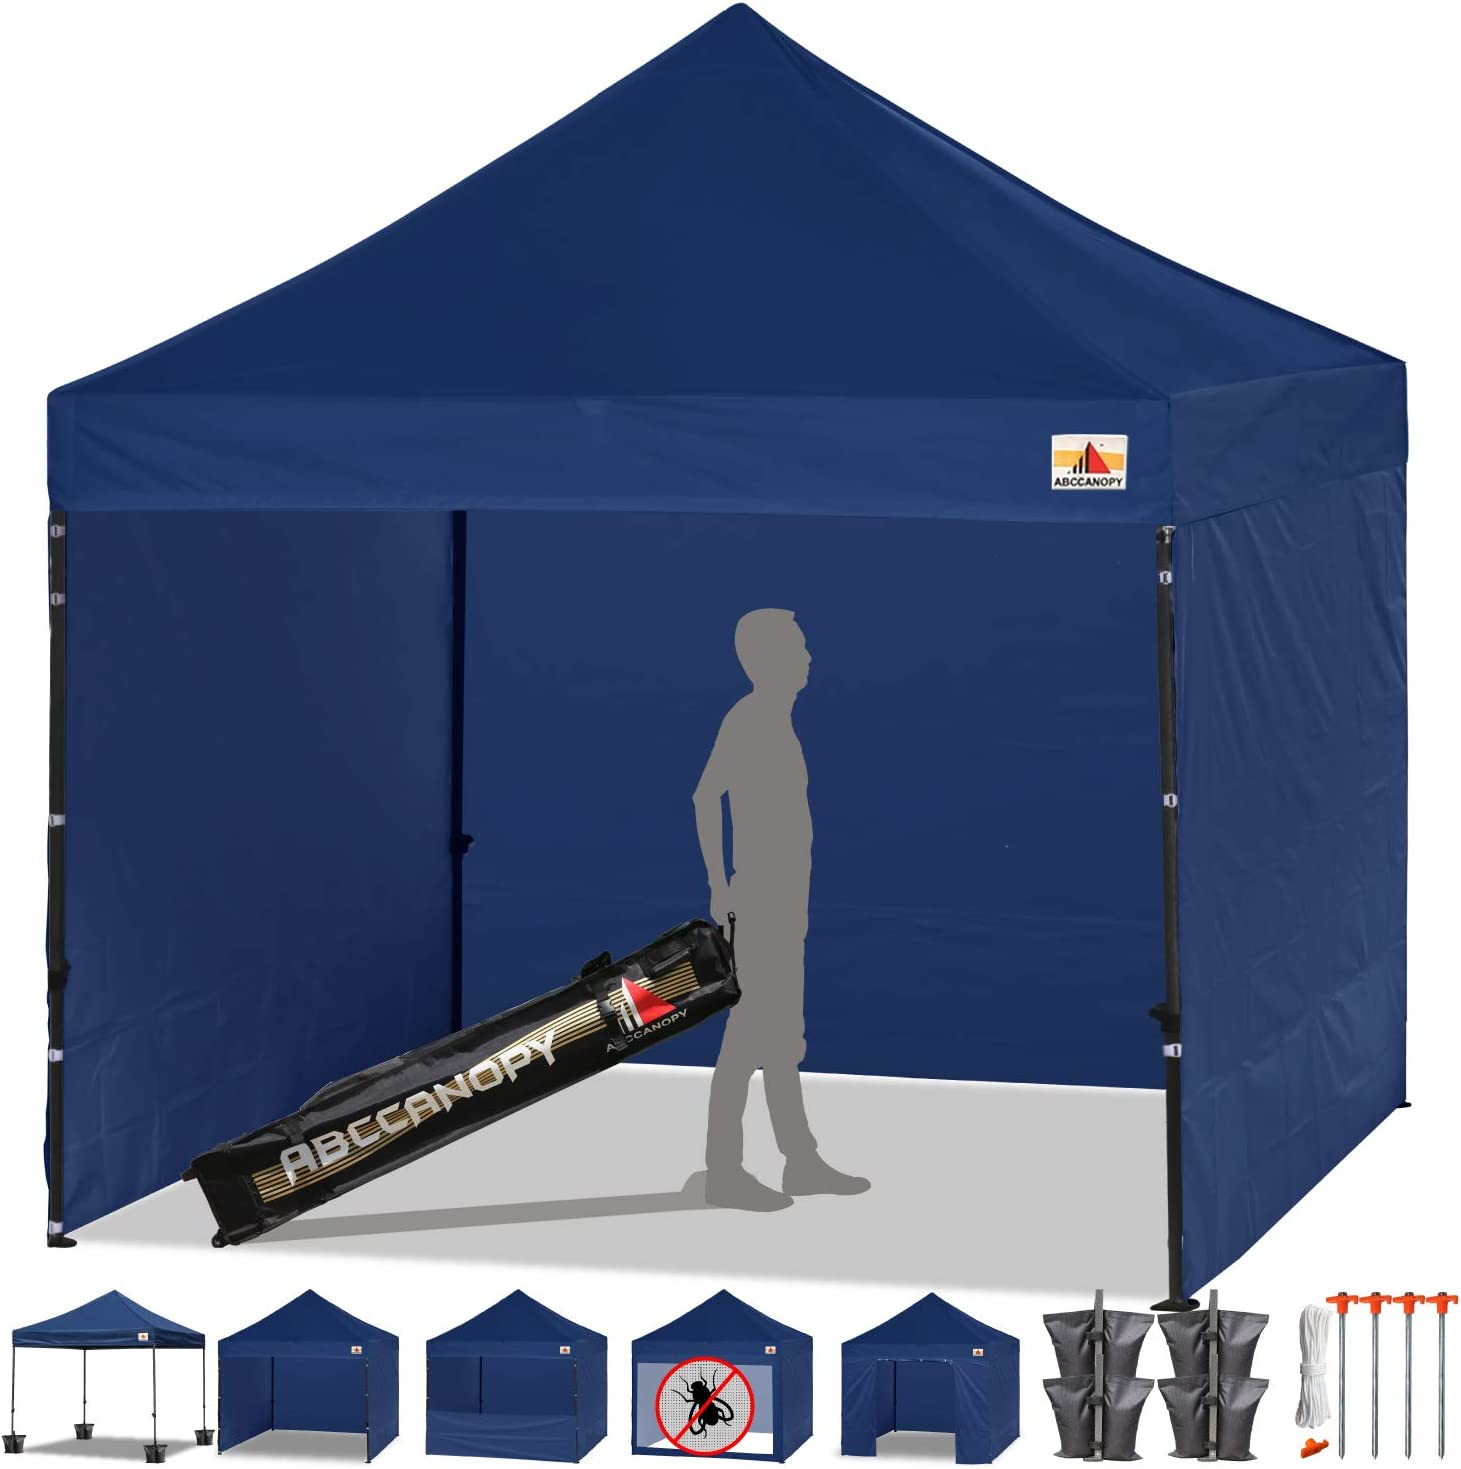 ABCCANOPY Canopy Tent Popup Canopy 10×10 Pop Up Canopies Commercial Tents Market stall with 6 Removable Sidewalls and Roller Bag Bonus 4 Weight Bags and 10ft Screen Netting and Half Wall, Navy Blue